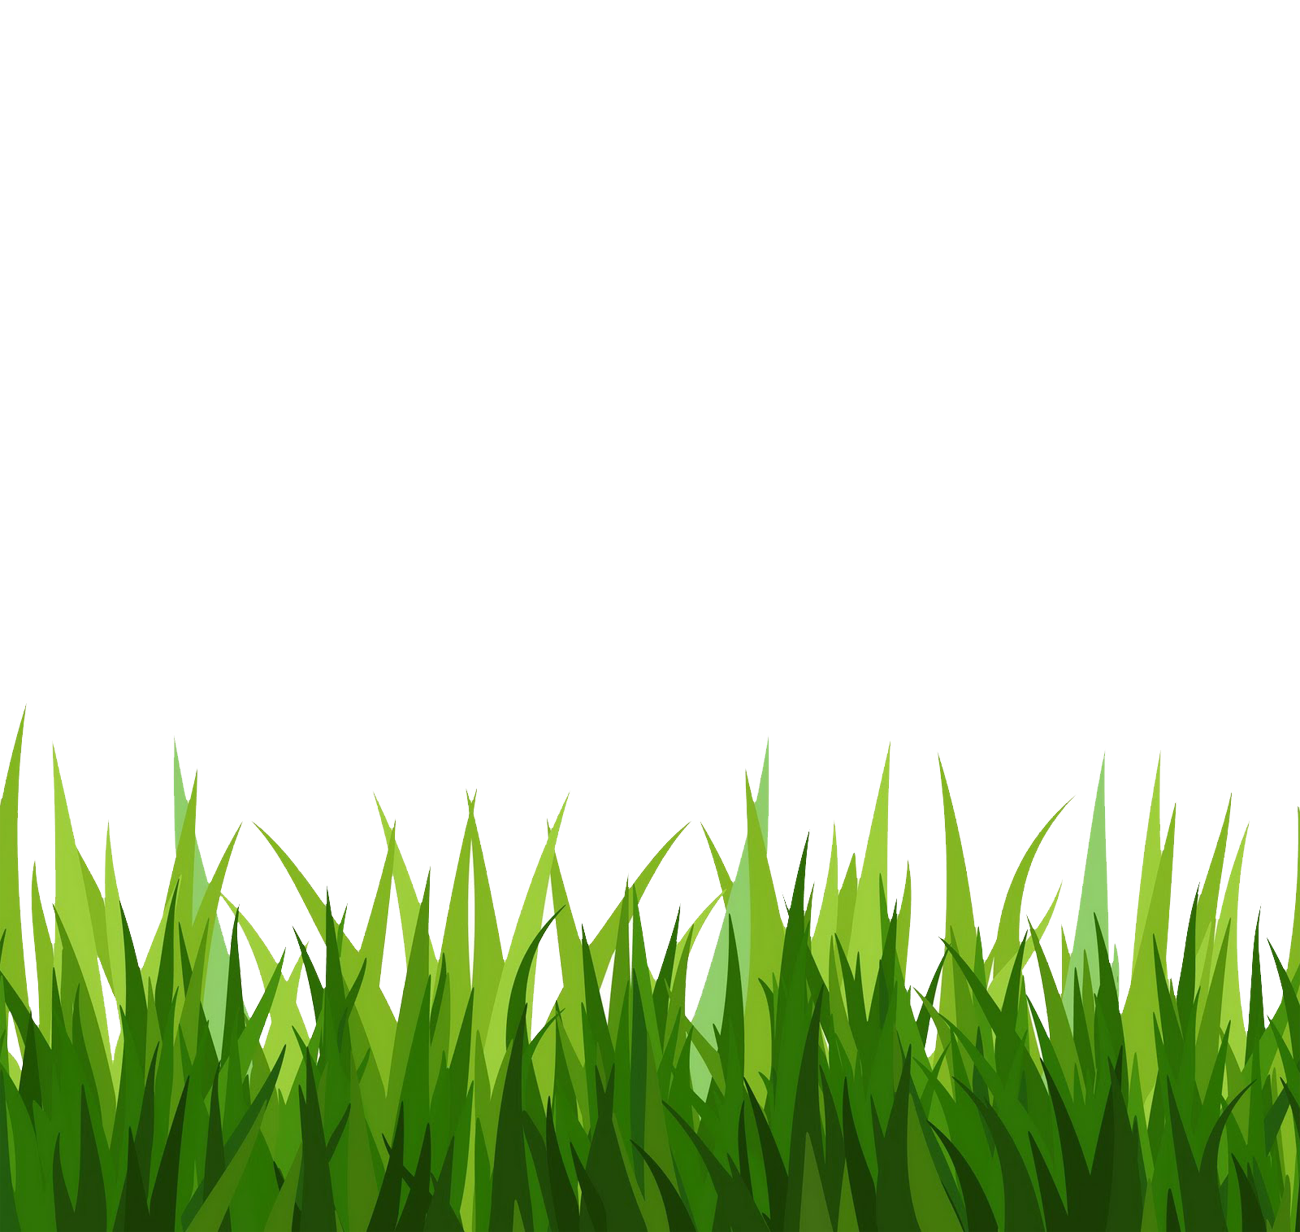 Lawn clipart #19, Download drawings